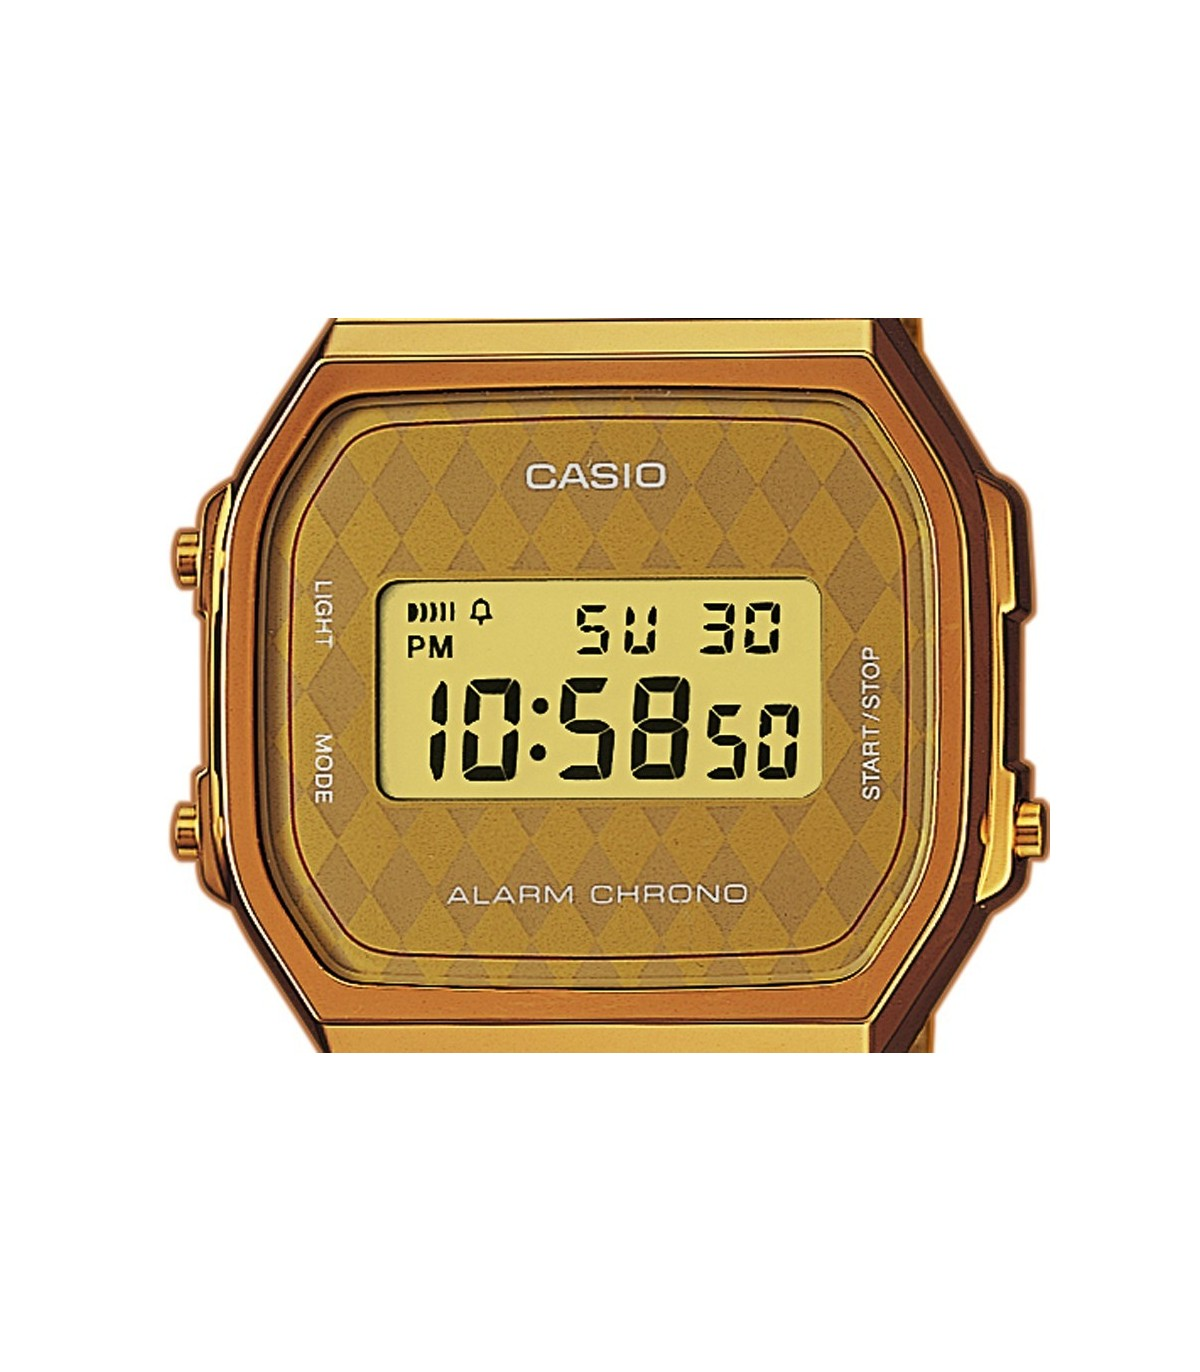 Reloj Retro A168wg 9bw Collection Casio m8OvnNw0